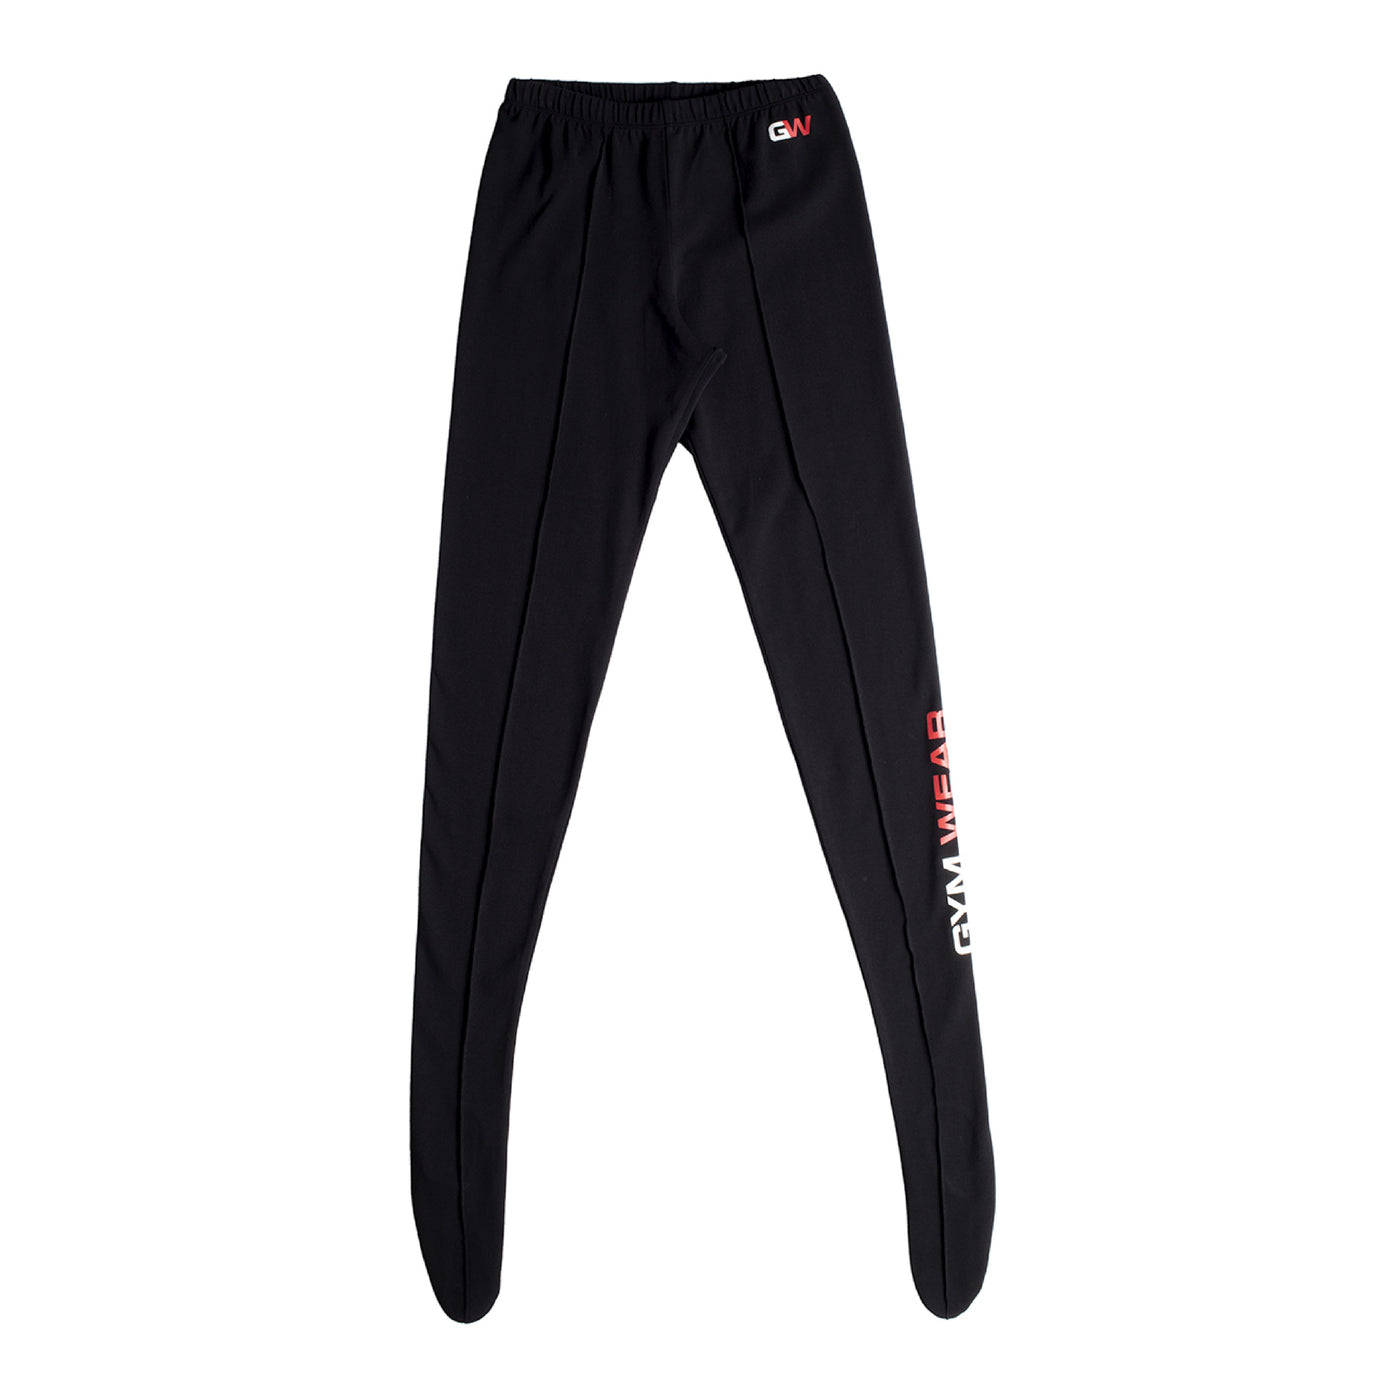 Load image into Gallery viewer, BALENCIAGA DYNASTY LEGGINGS BLACK